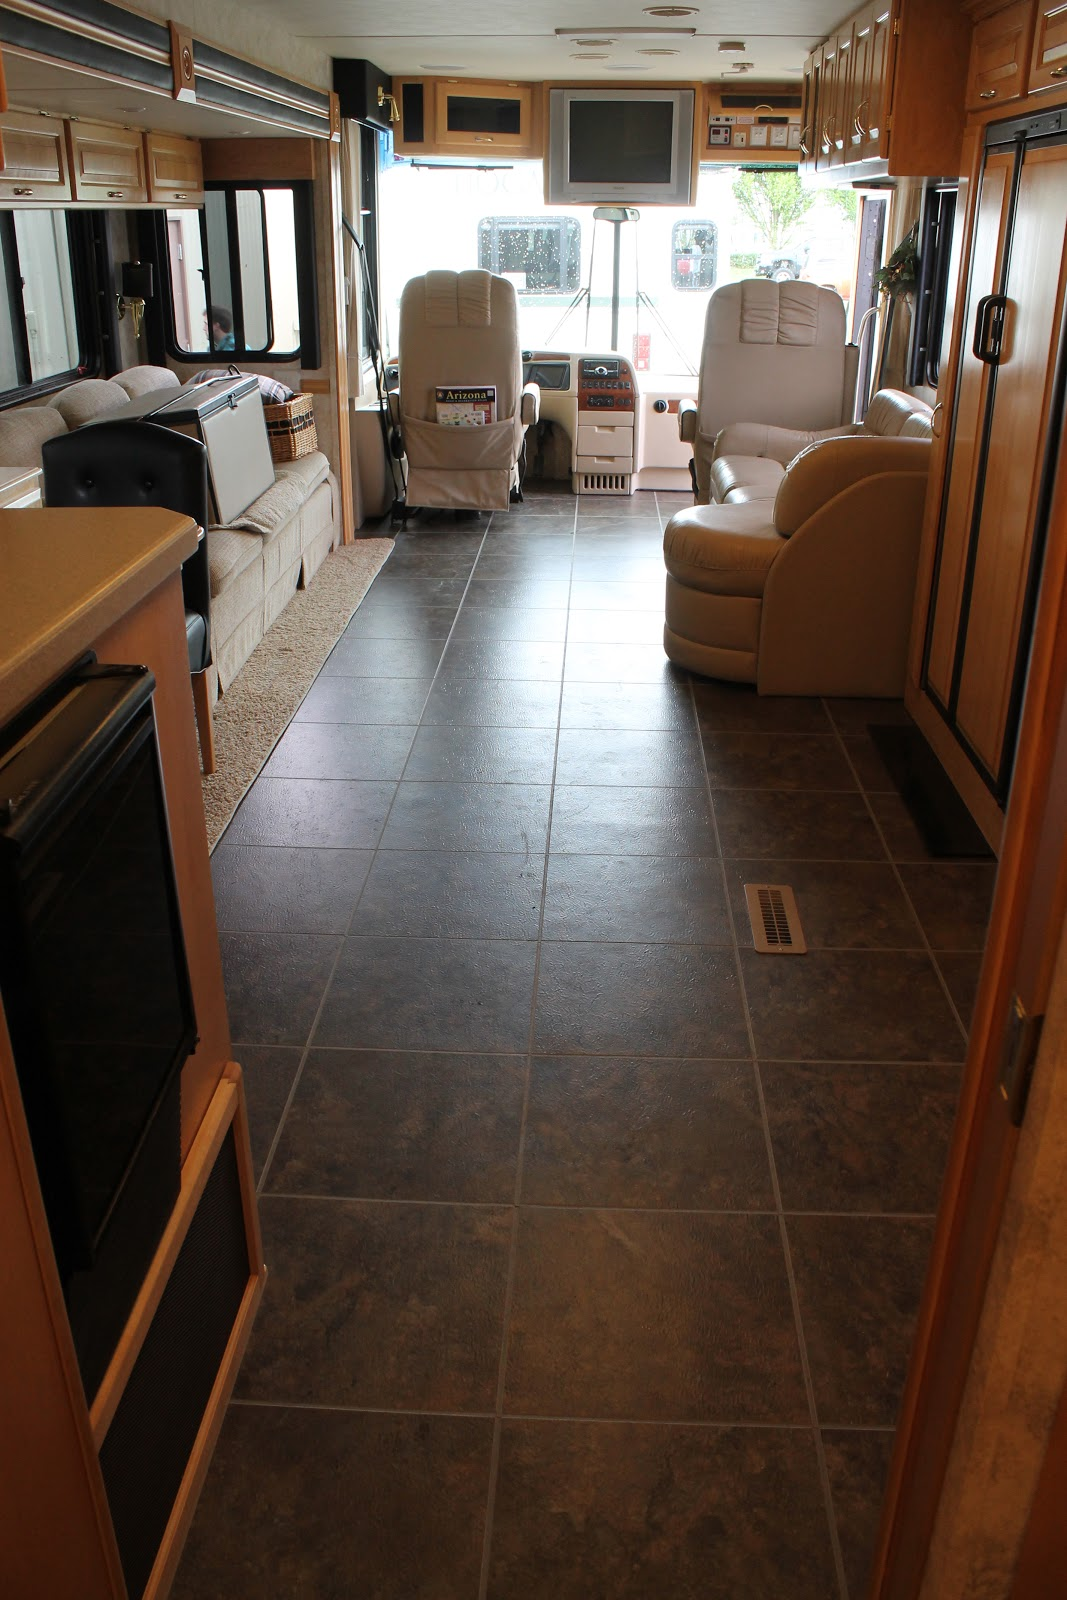 Countryside interiors transforming rvs and trailers since the 80s looking to the front of 2004 dutch star before and after nafco tile dailygadgetfo Choice Image